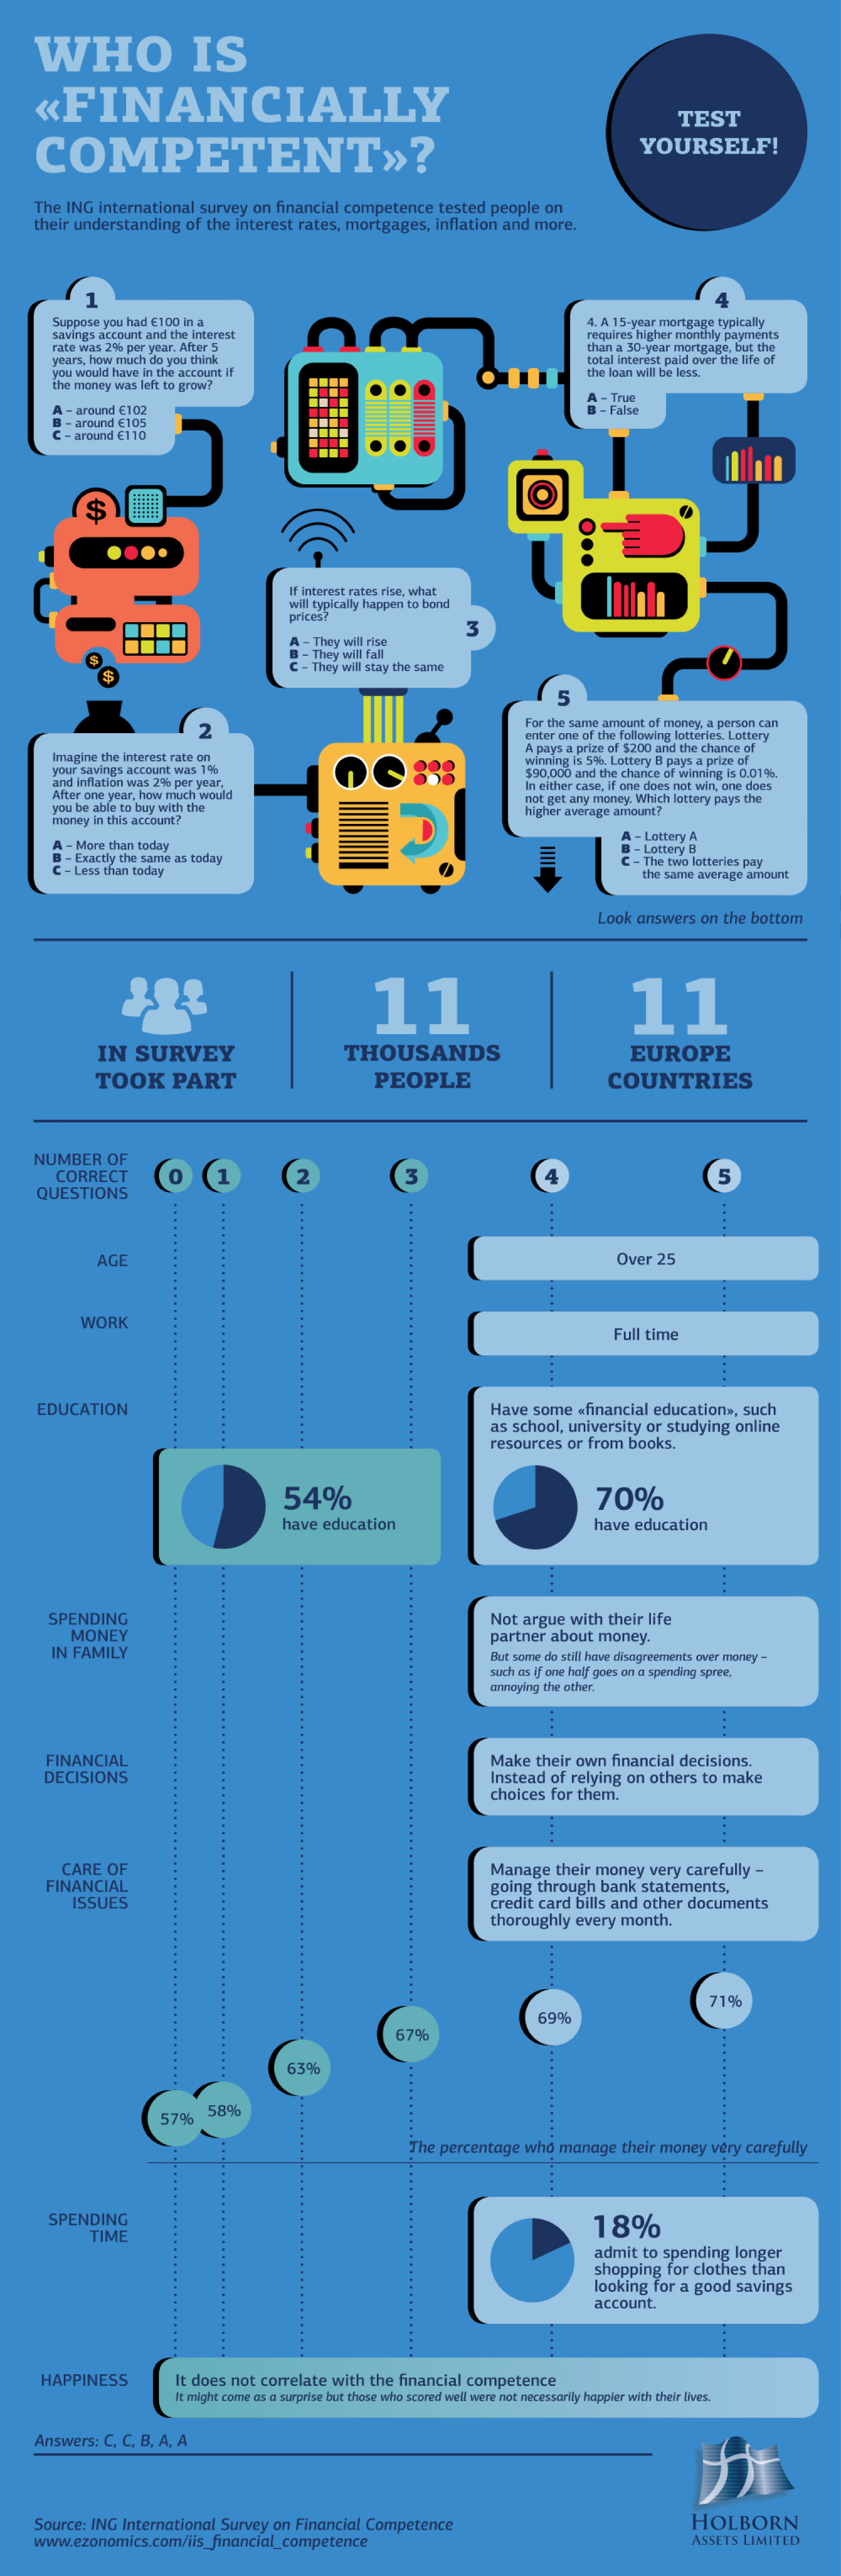 Who is Financially Competent? Infographic